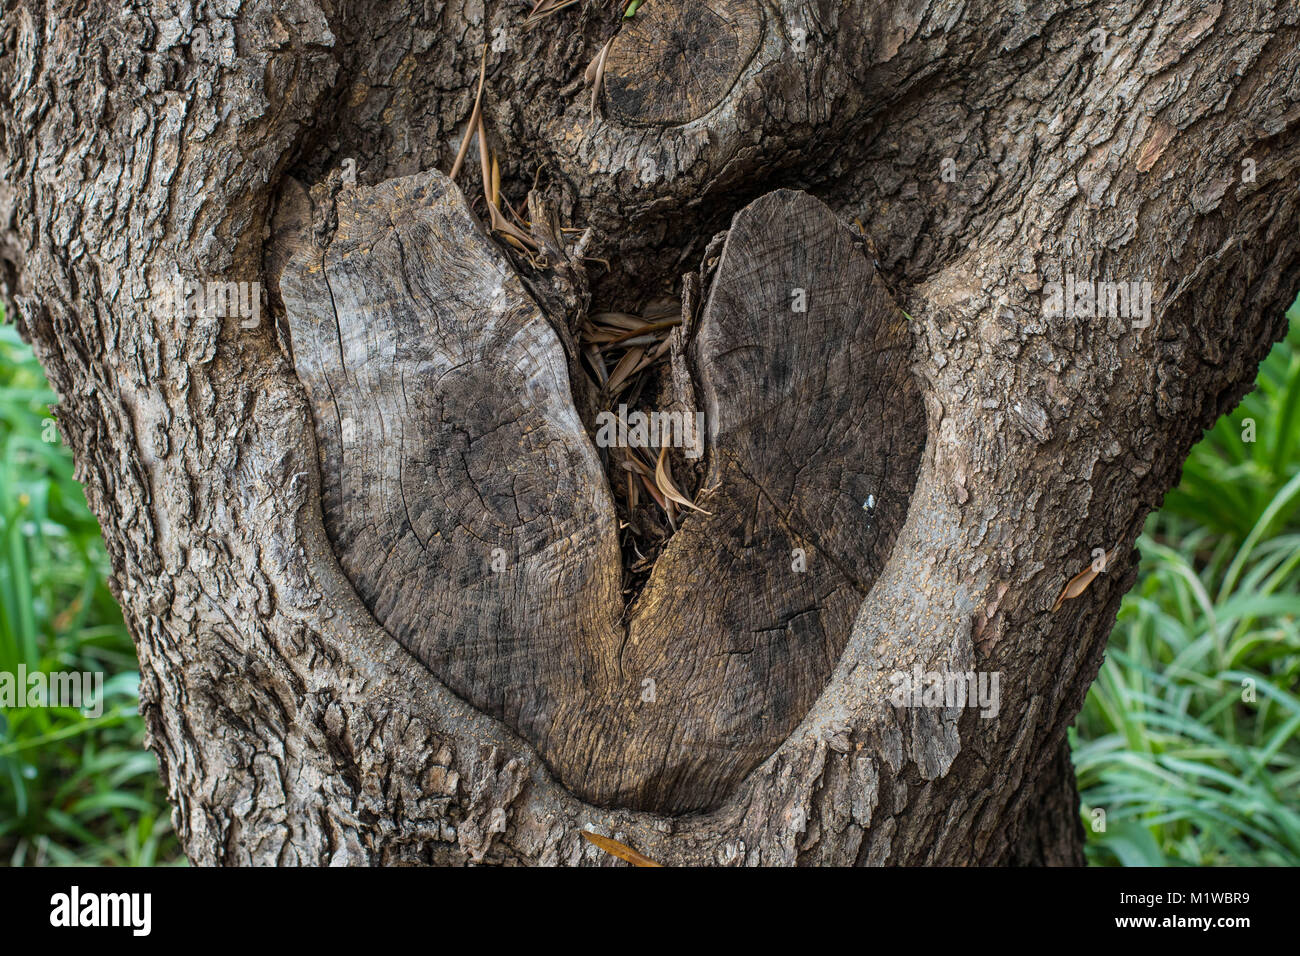 Knot in the trunk of a tree shaped like a heart broken in two, image in landscape format with copy space - Stock Image